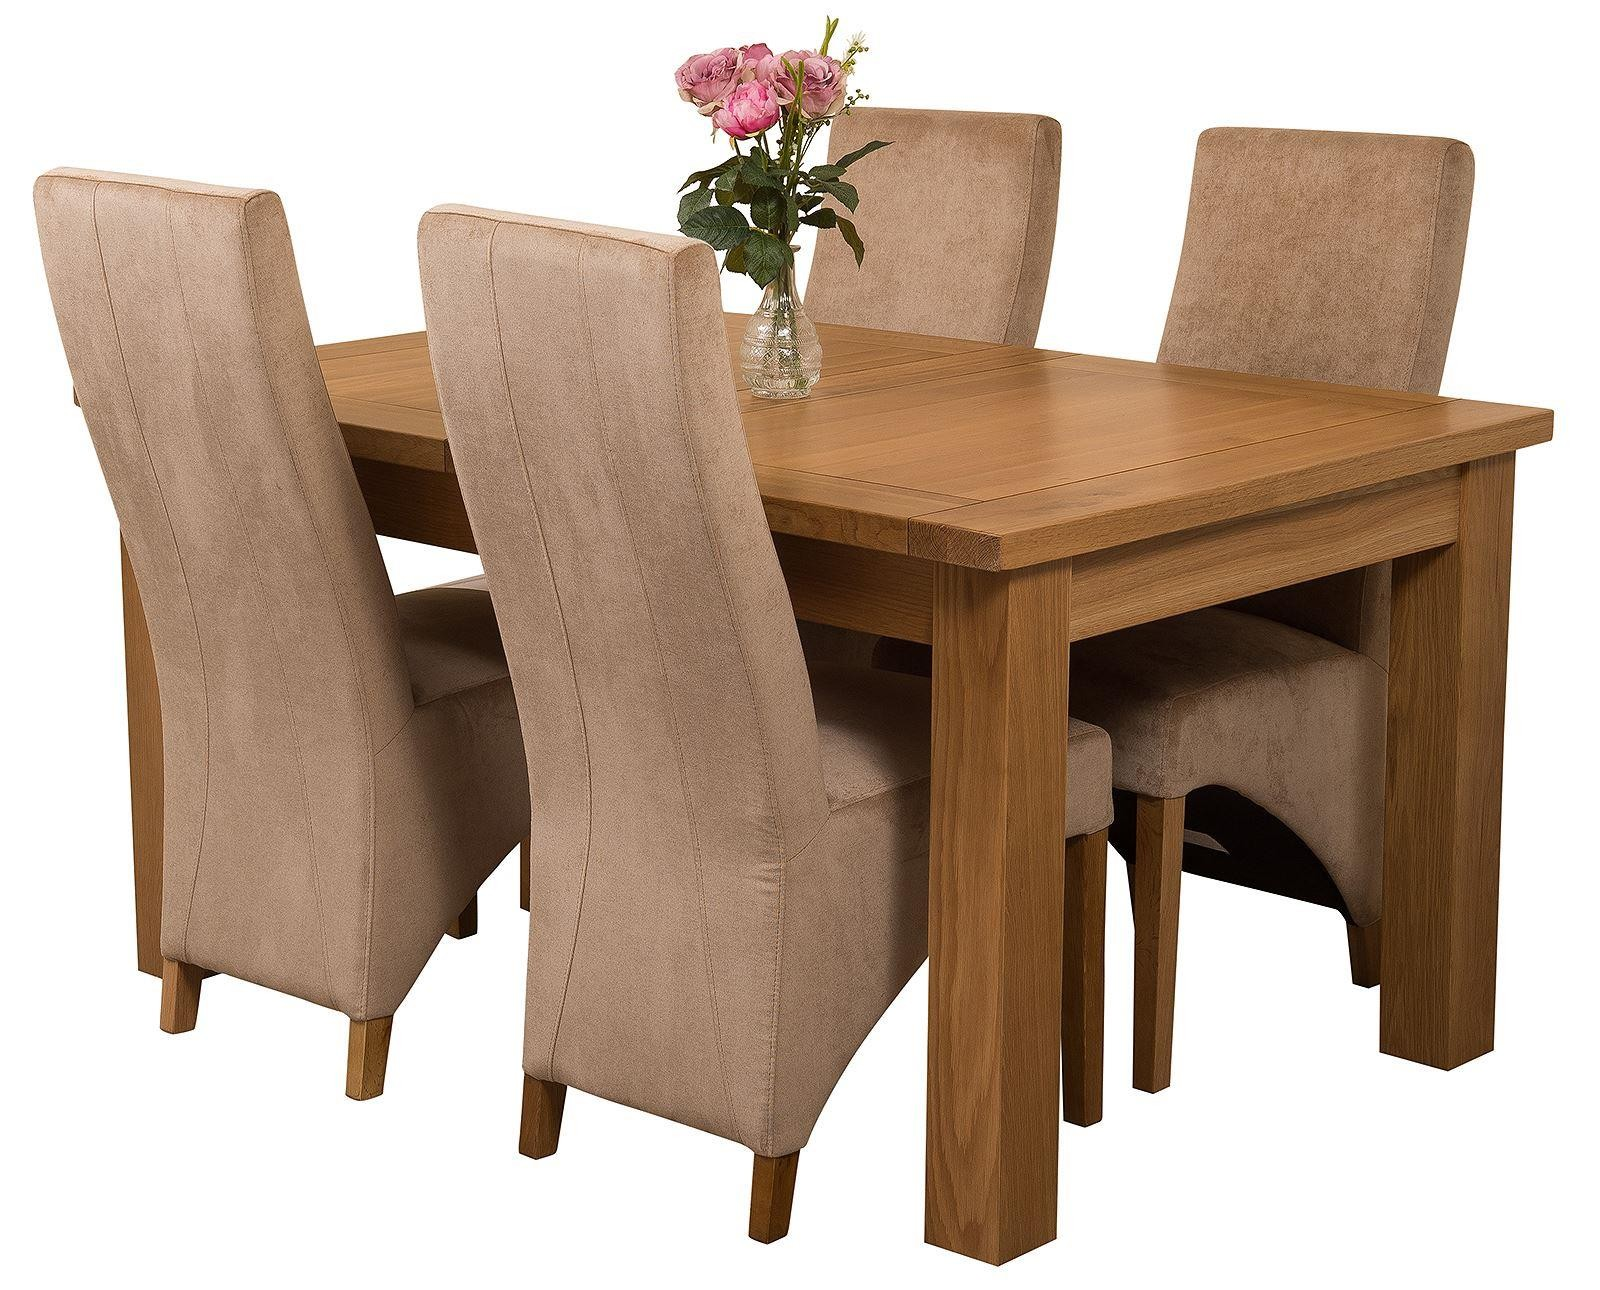 Seattle Solid Oak 150cm-210cm Extending Dining Table with 4 Lola Dining Chairs [Beige Fabric]